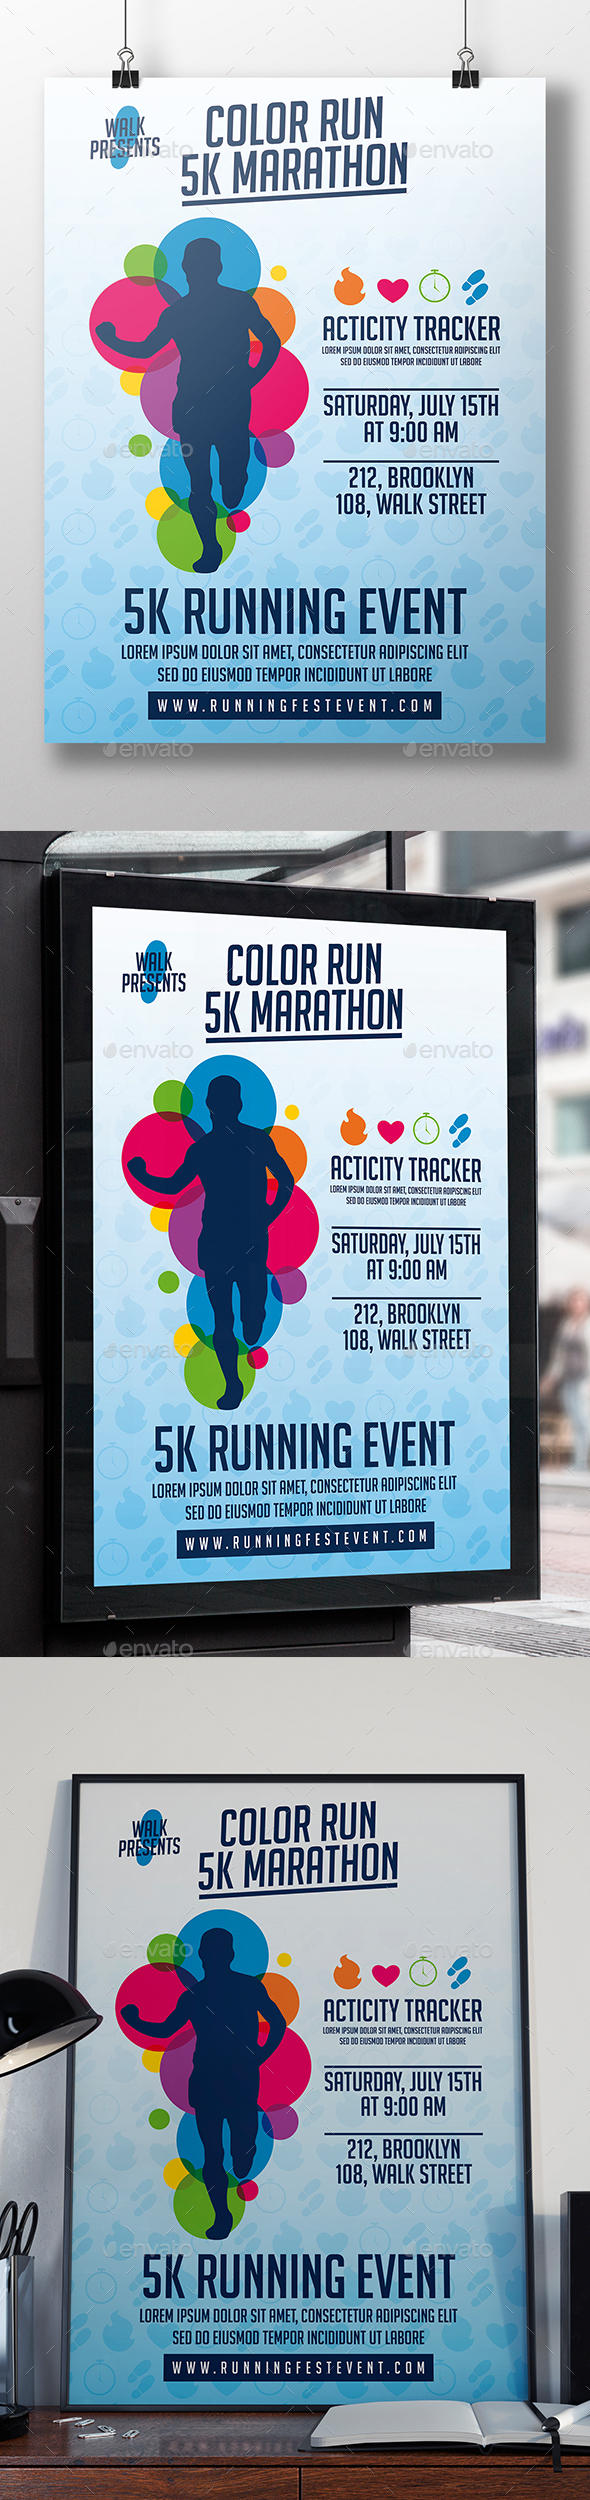 Run Event Flyer Template - Sports Events